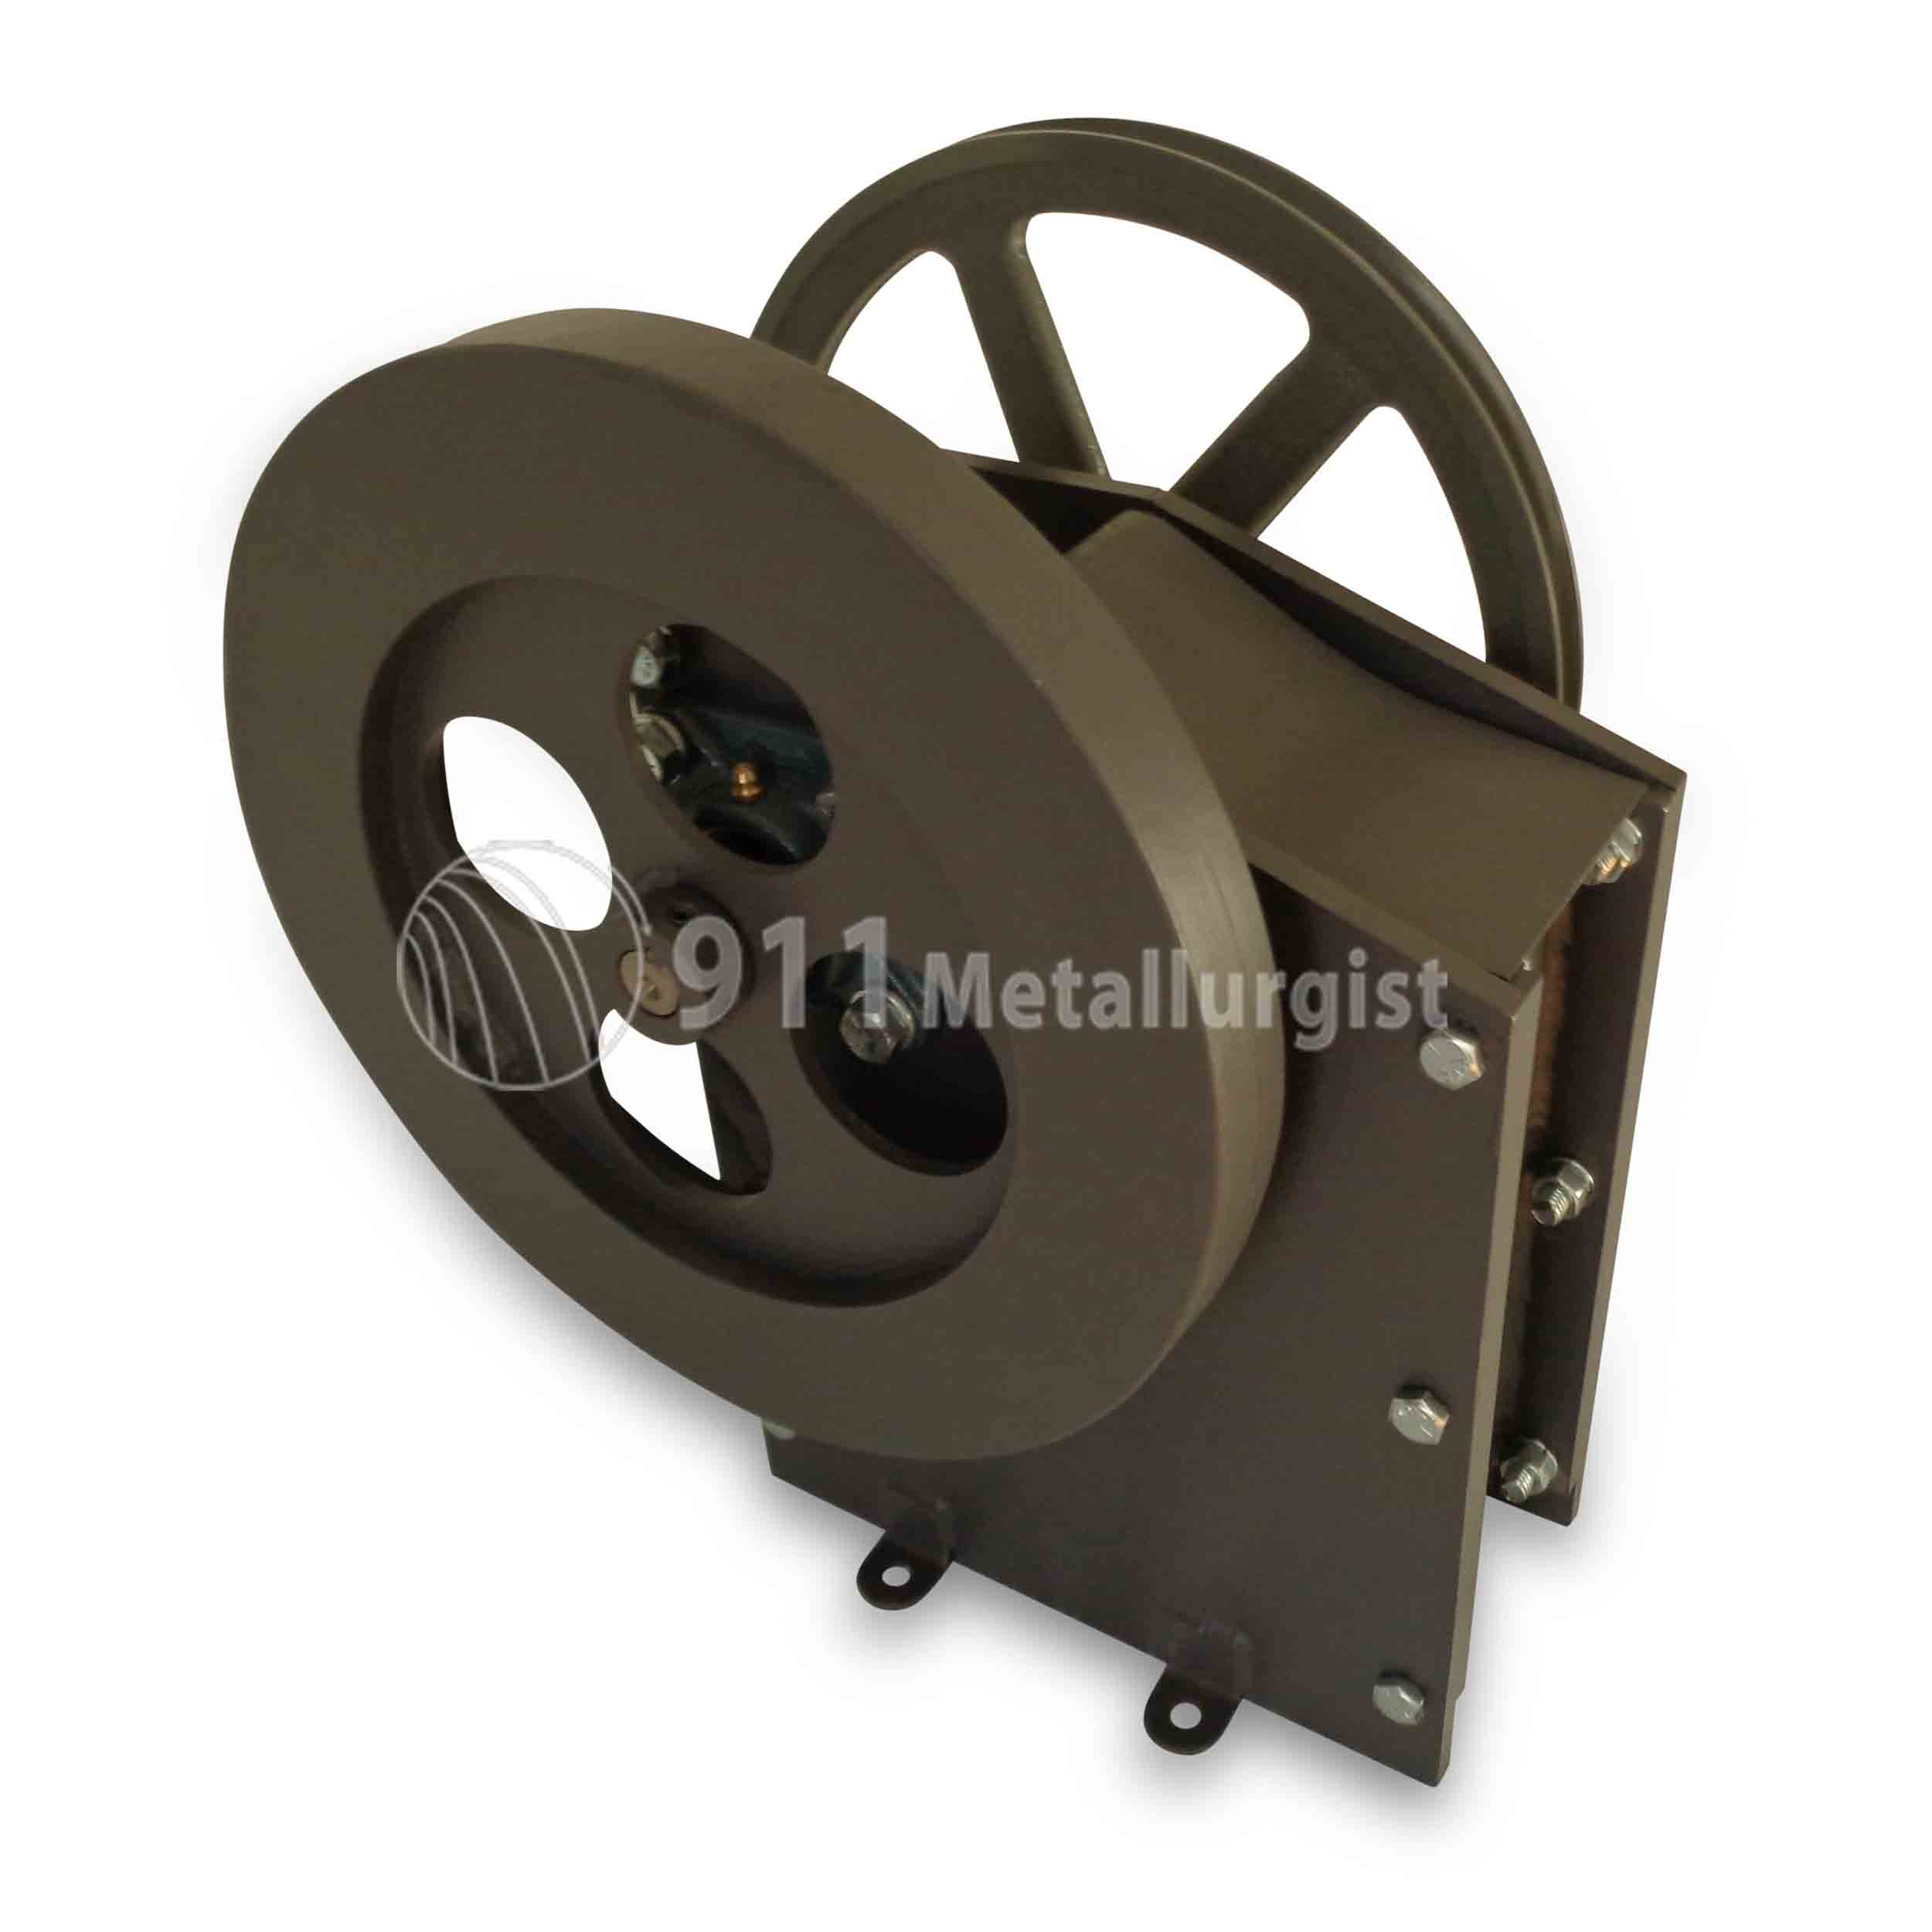 134-mobile-jaw-crusher-for-sale